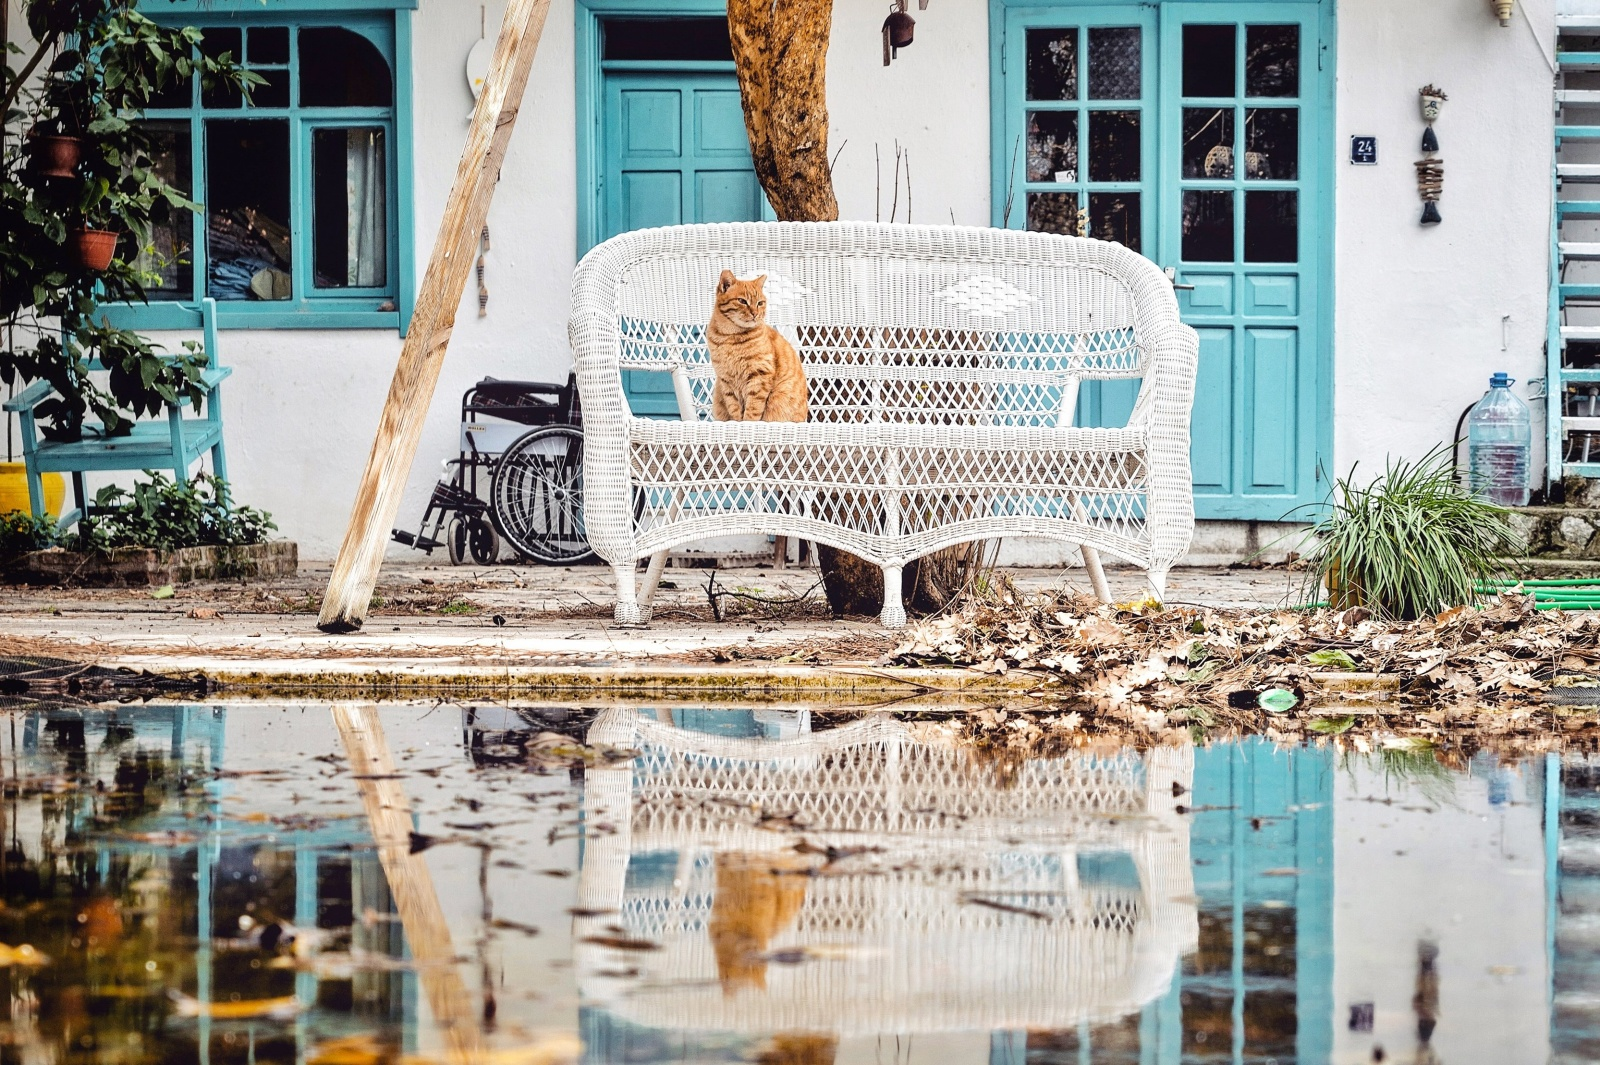 Cat of Selimiye, Turkey